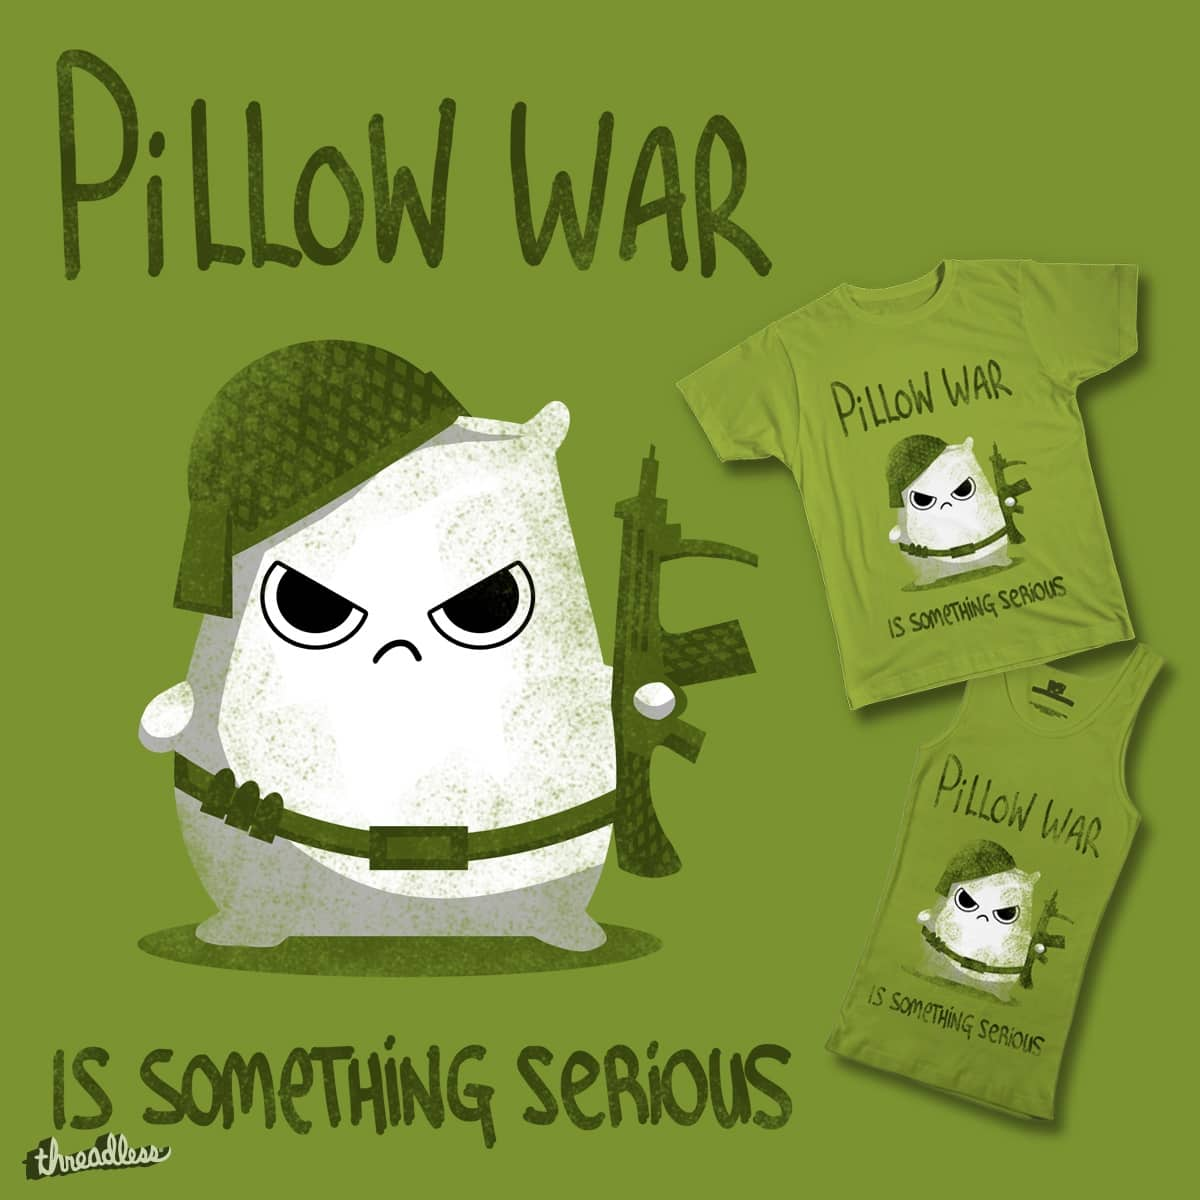 Pillow war by DaylightFirefly on Threadless